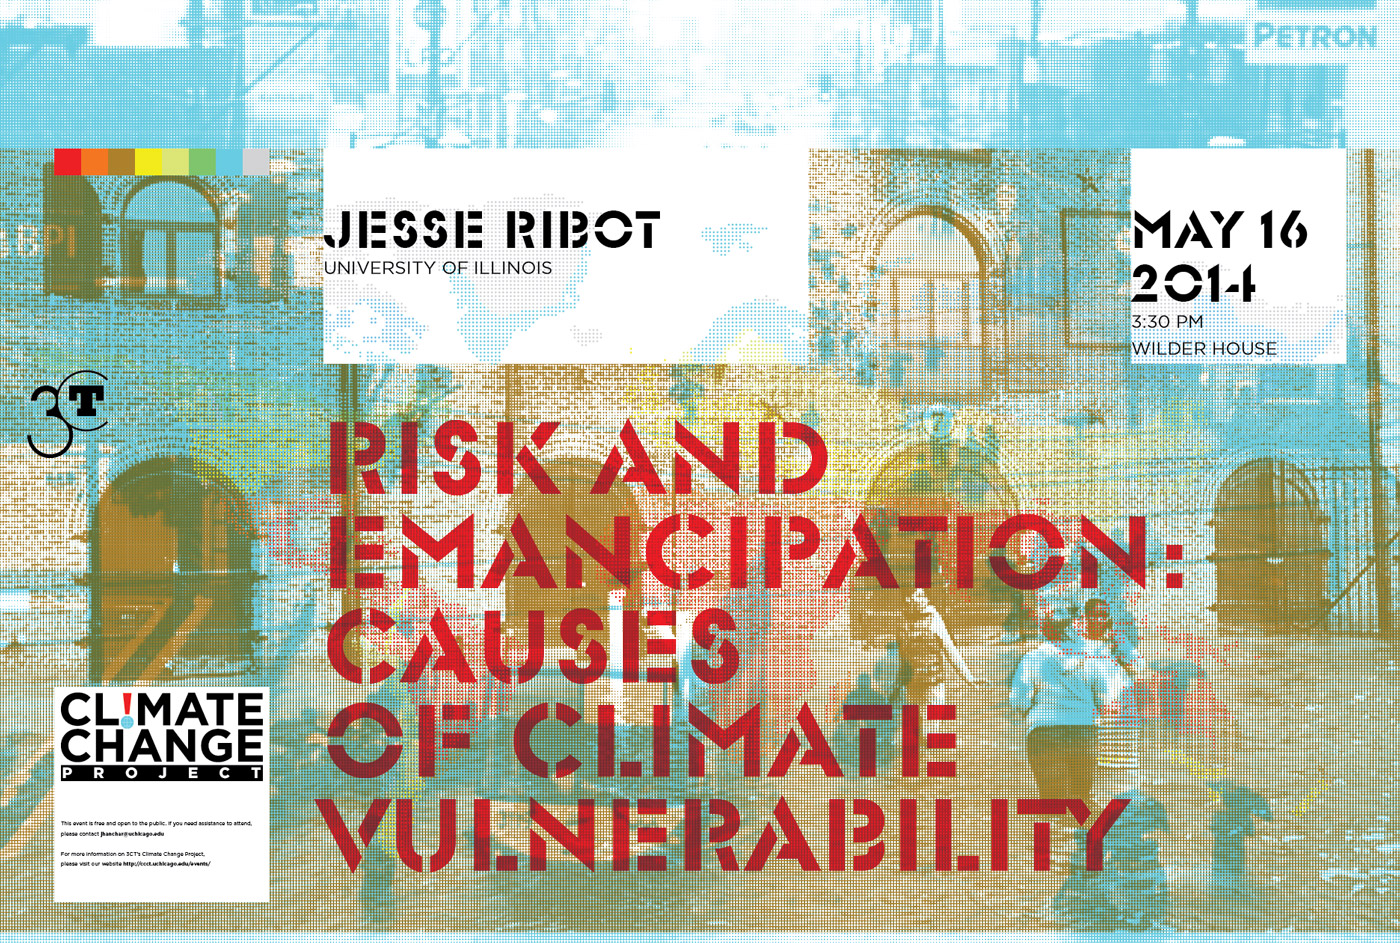 Poster for Jesse Ribot Climate Change event